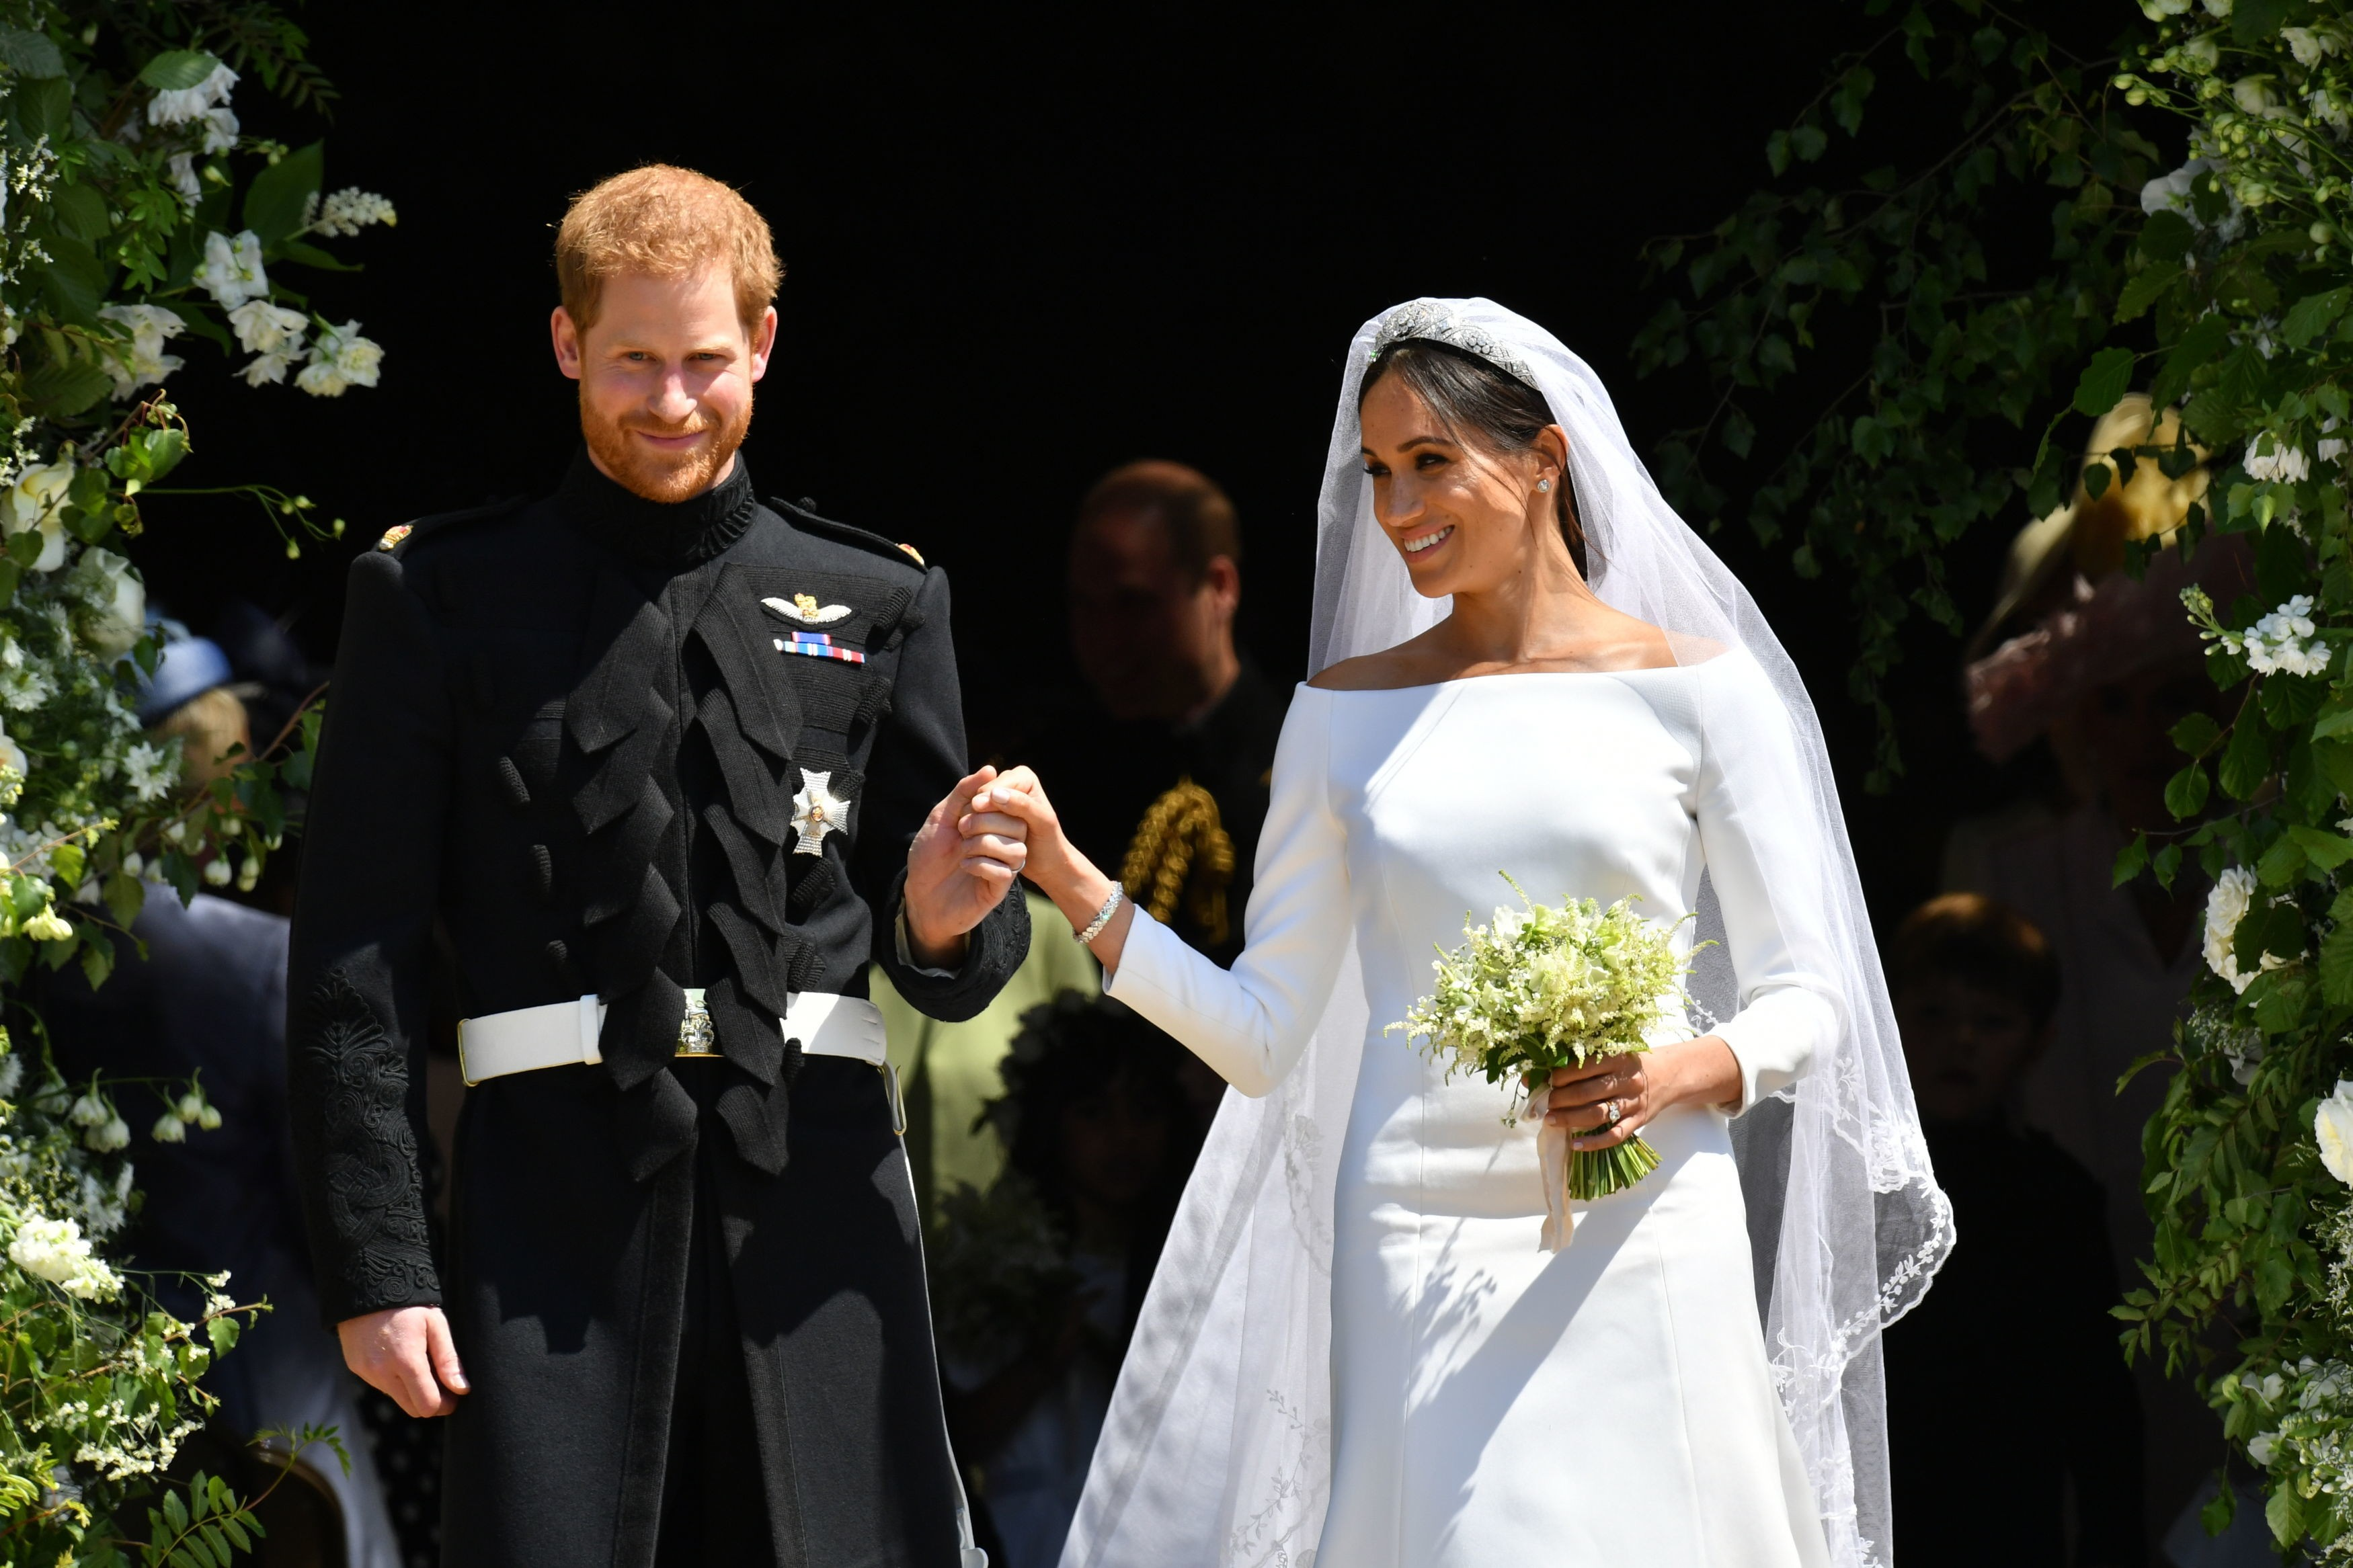 Meghan Markle e Príncipe Harry no dia de seu casamento, no Castelo de Windsor (Foto: Getty Images)